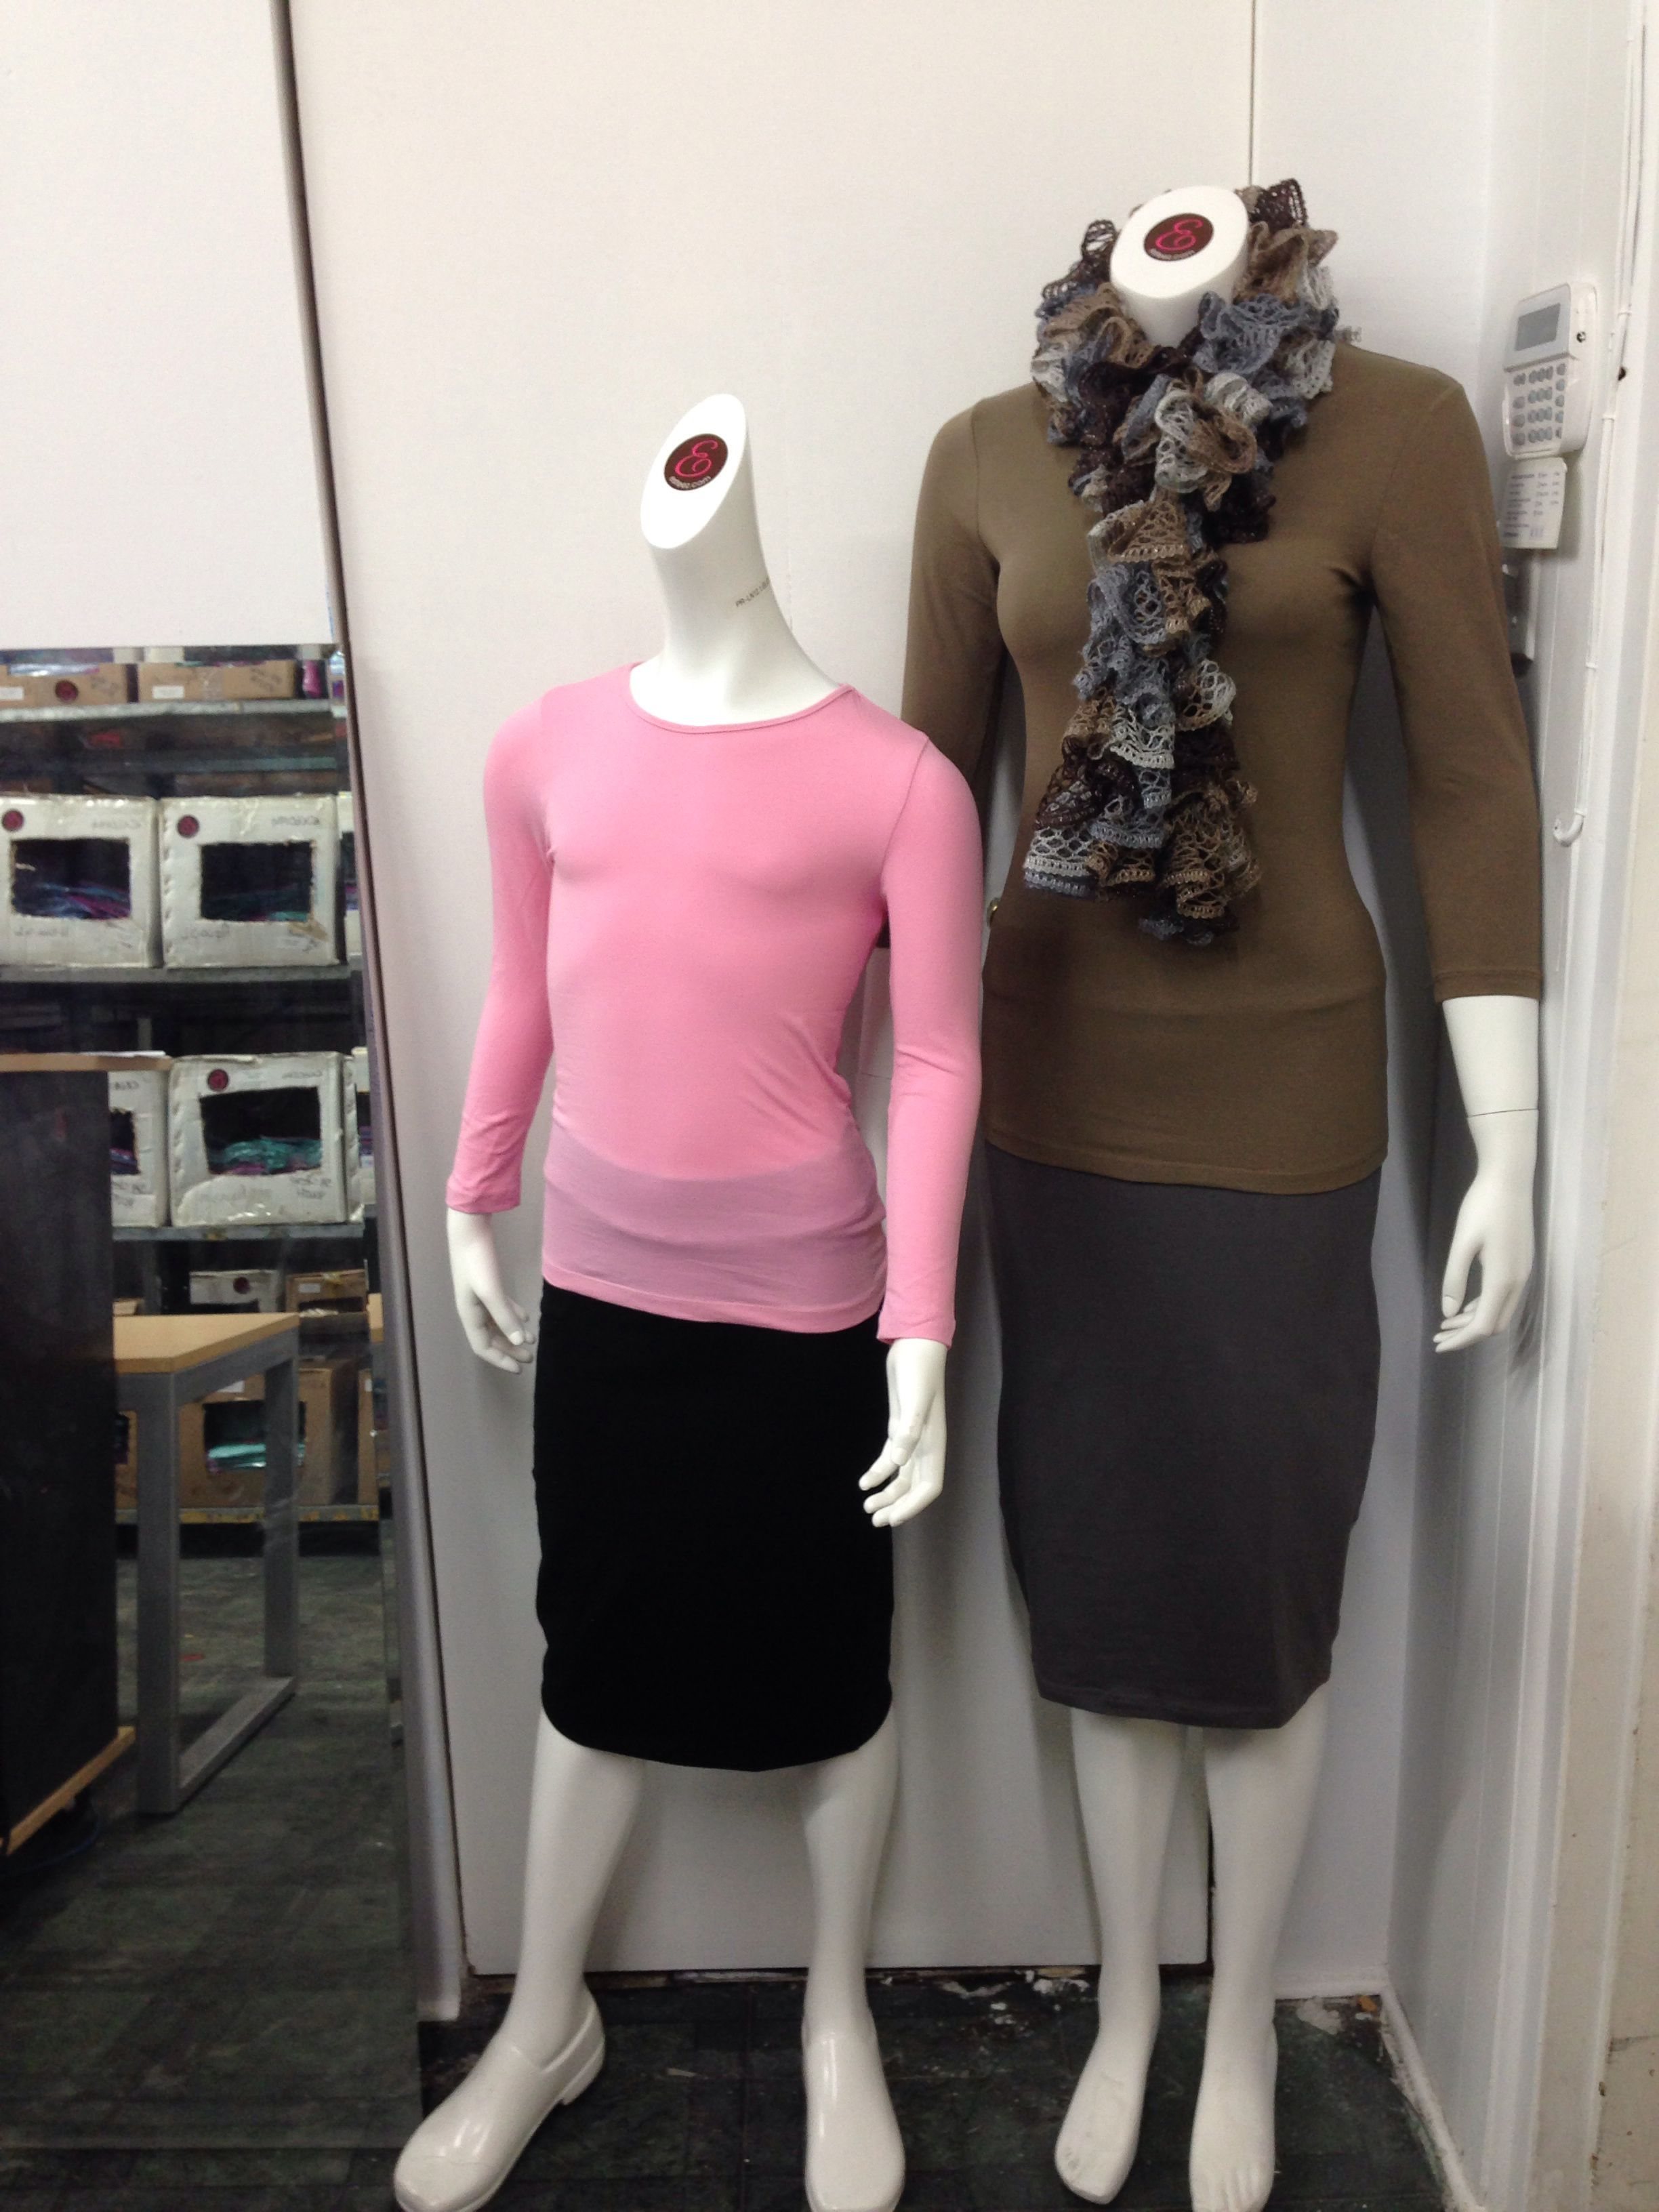 Mom and daughter both dressed for under $60. Esteez for comfortable, affordable modest apparel.